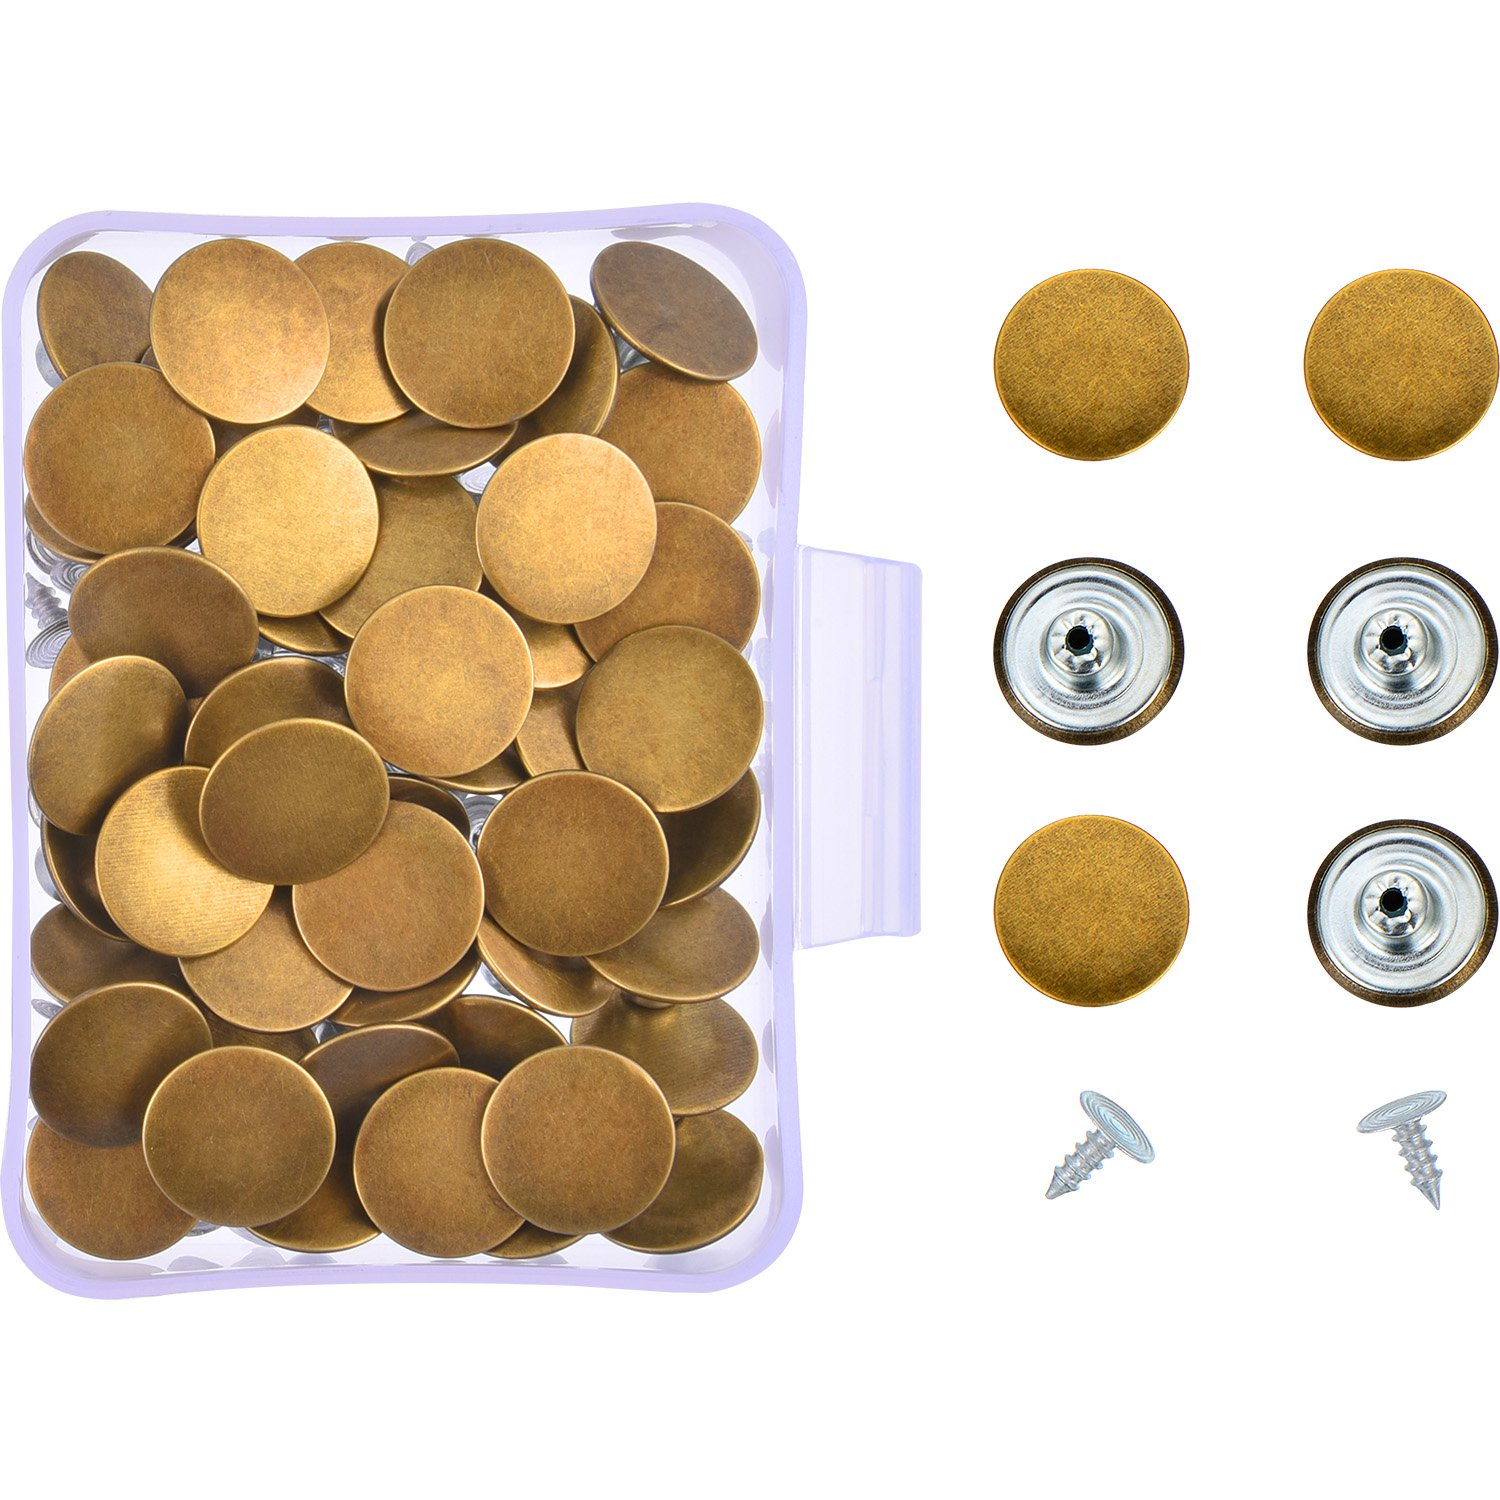 Hestya 40 Sets Bronze Jeans Buttons Metal Tack Snap Buttons Replacement Button Kit with Rivets and Plastic Storage Box 4337006090